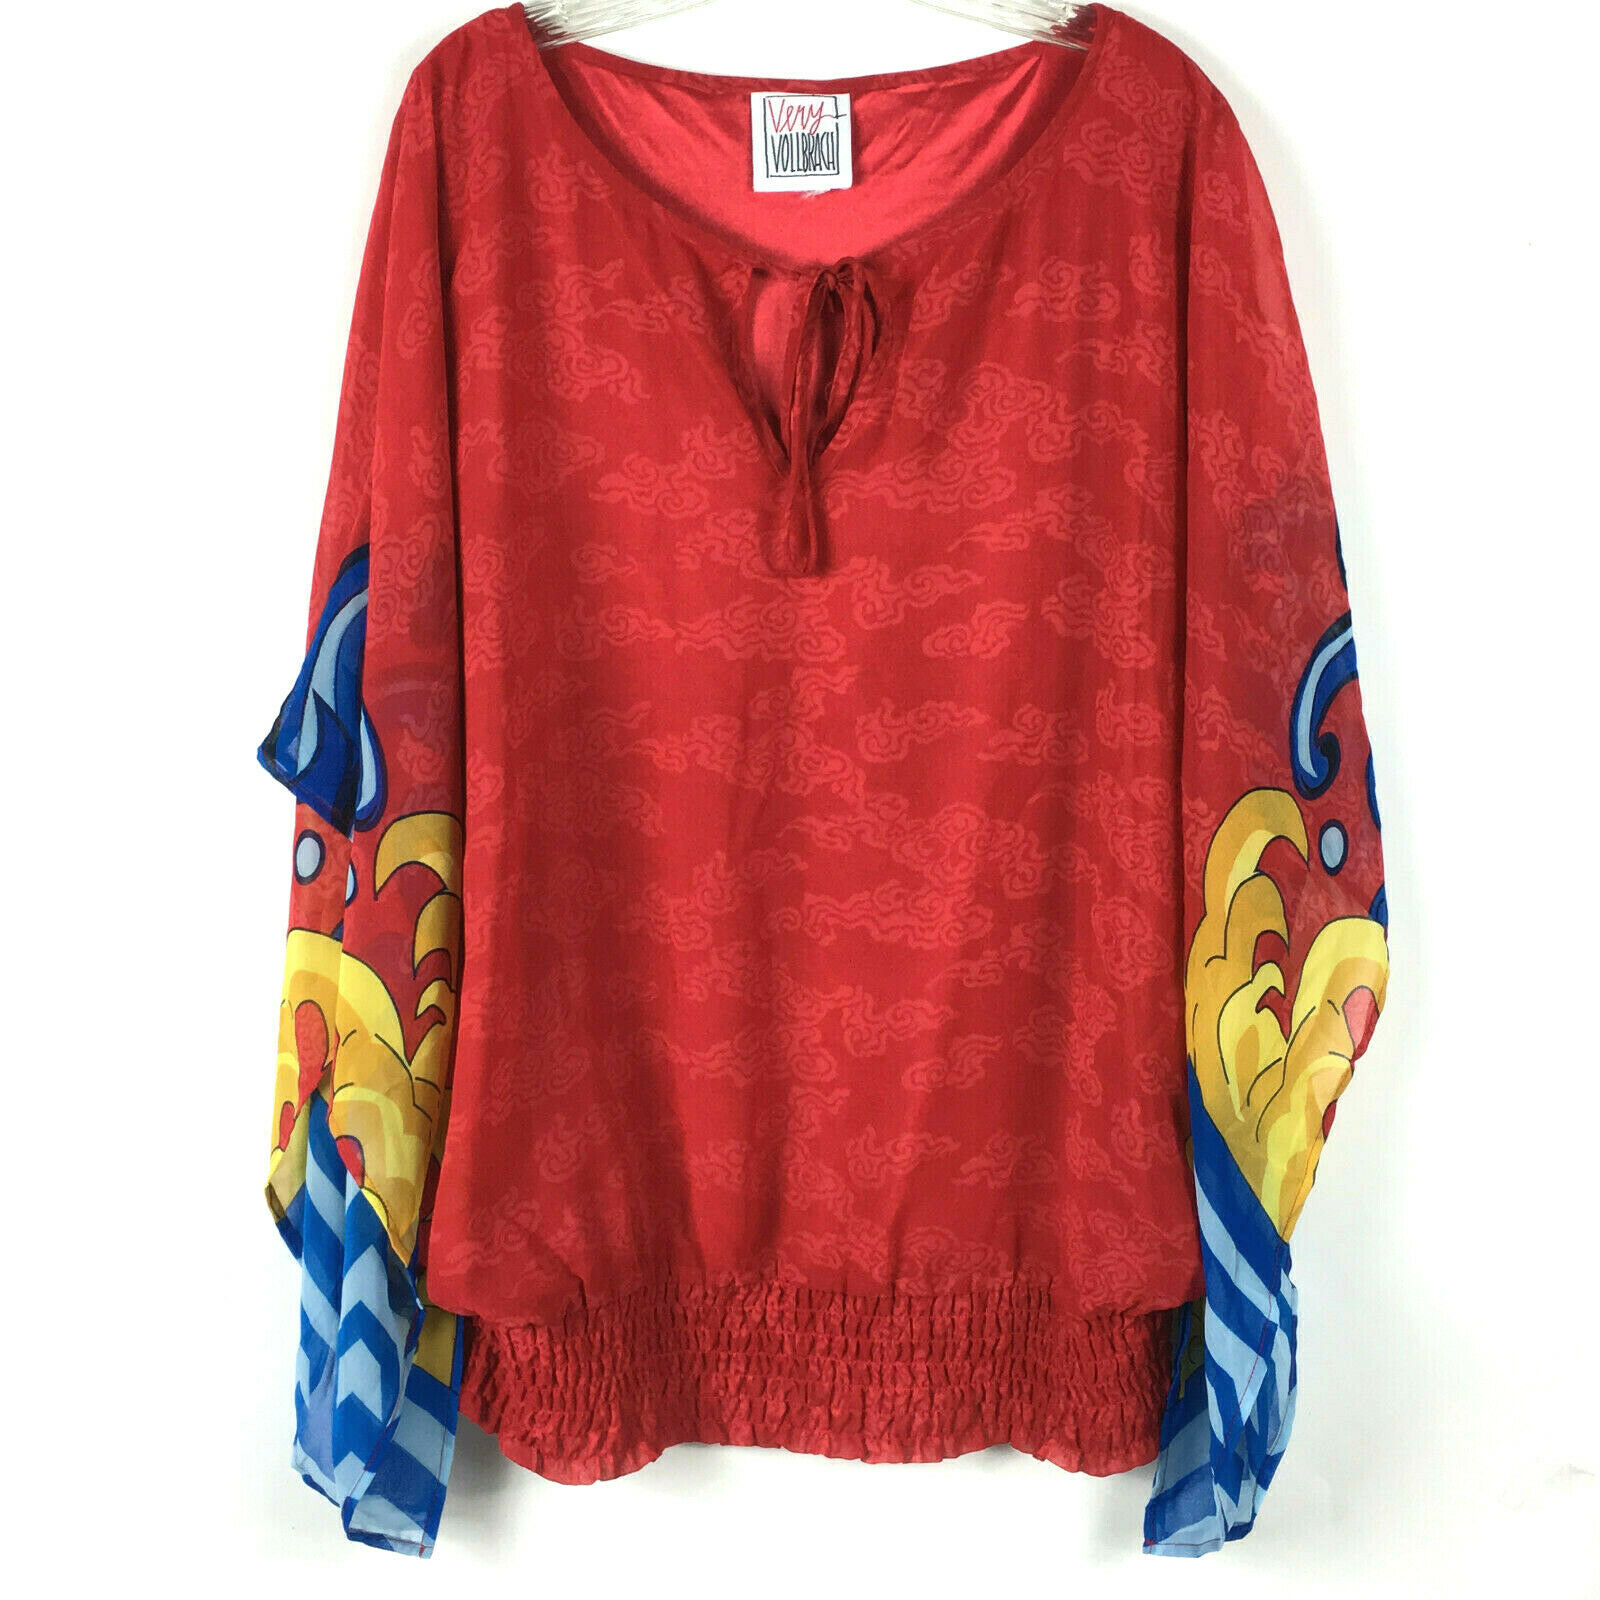 Very Vollbracht Art to Wear Oversized Blouse Wome… - image 2